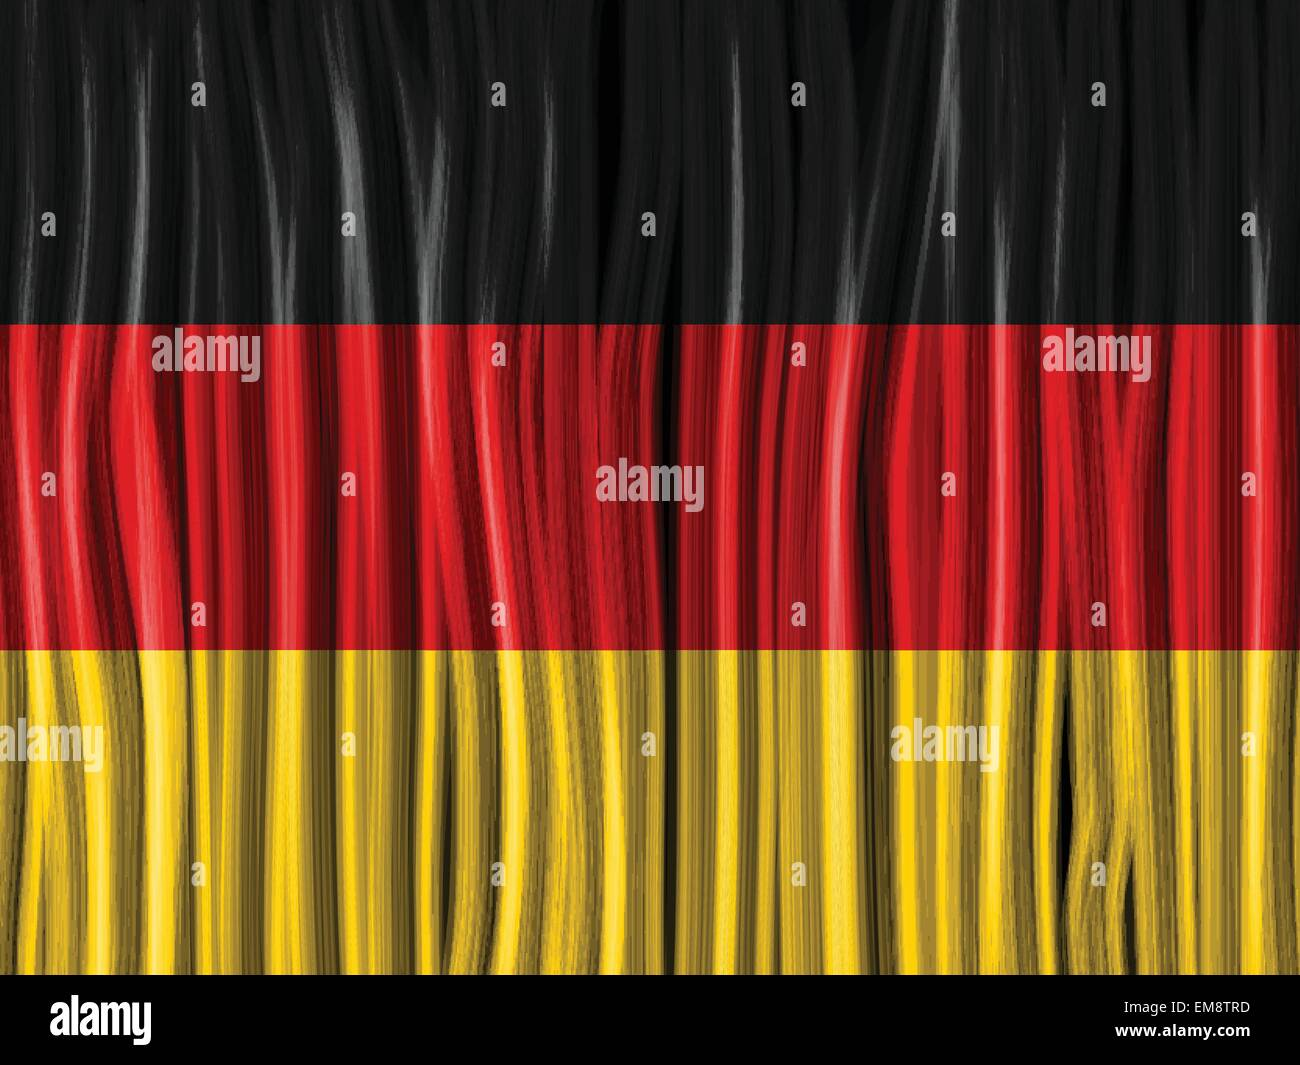 deutschland flagge welle stoff textilhintergrund vektor abbildung bild 81329681 alamy. Black Bedroom Furniture Sets. Home Design Ideas